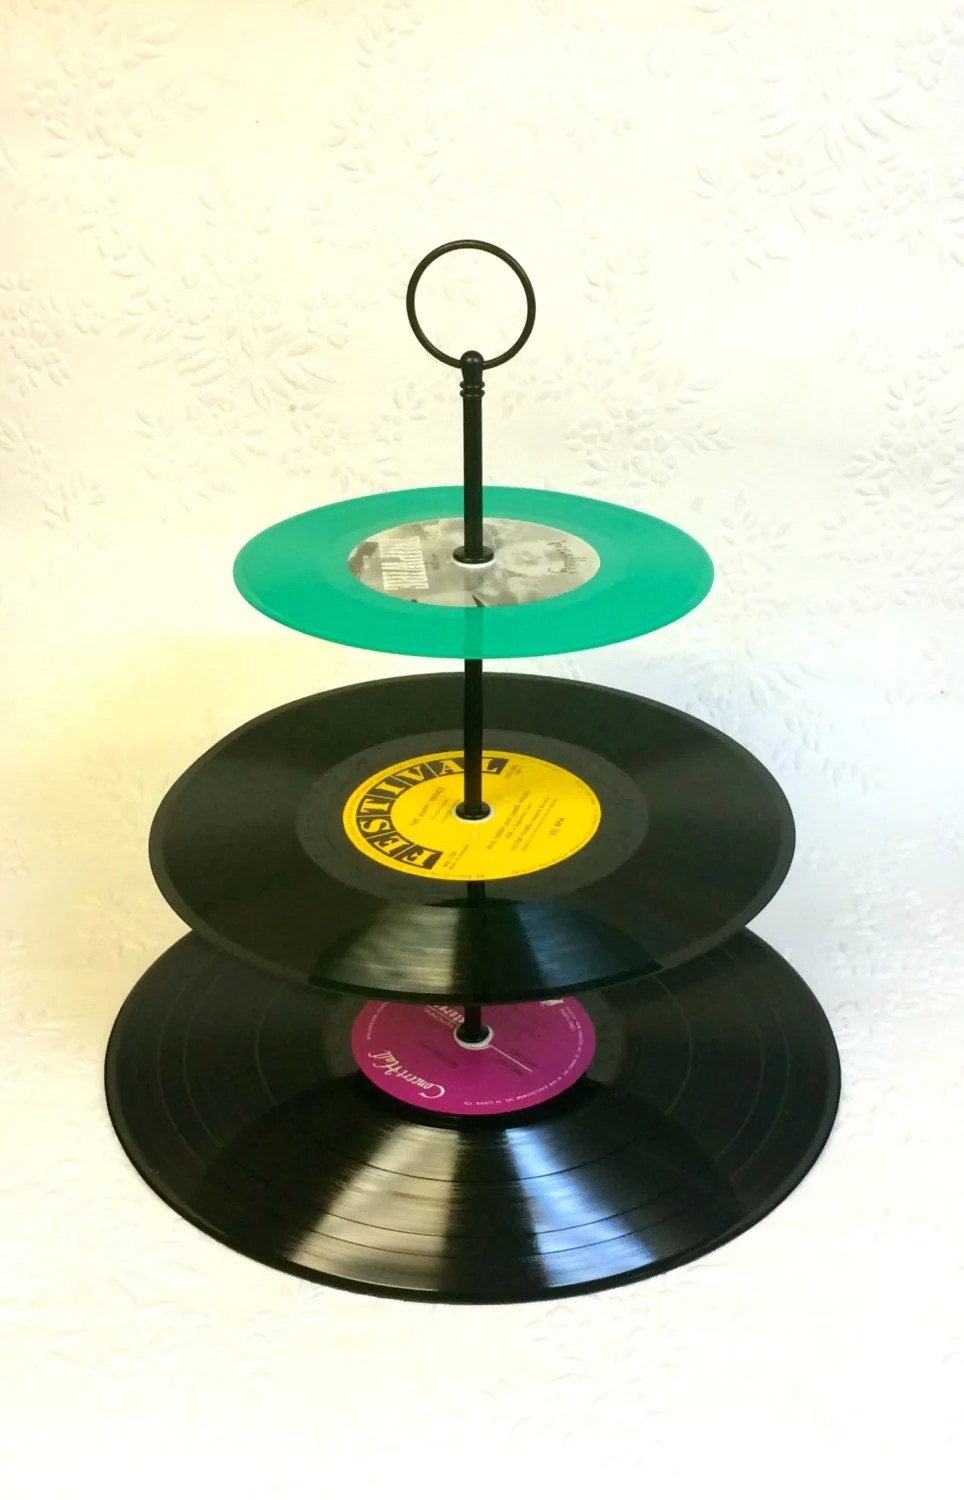 3 Tier Vinyl Record Cupcake Stand Retro Cake Stand By Myeroom